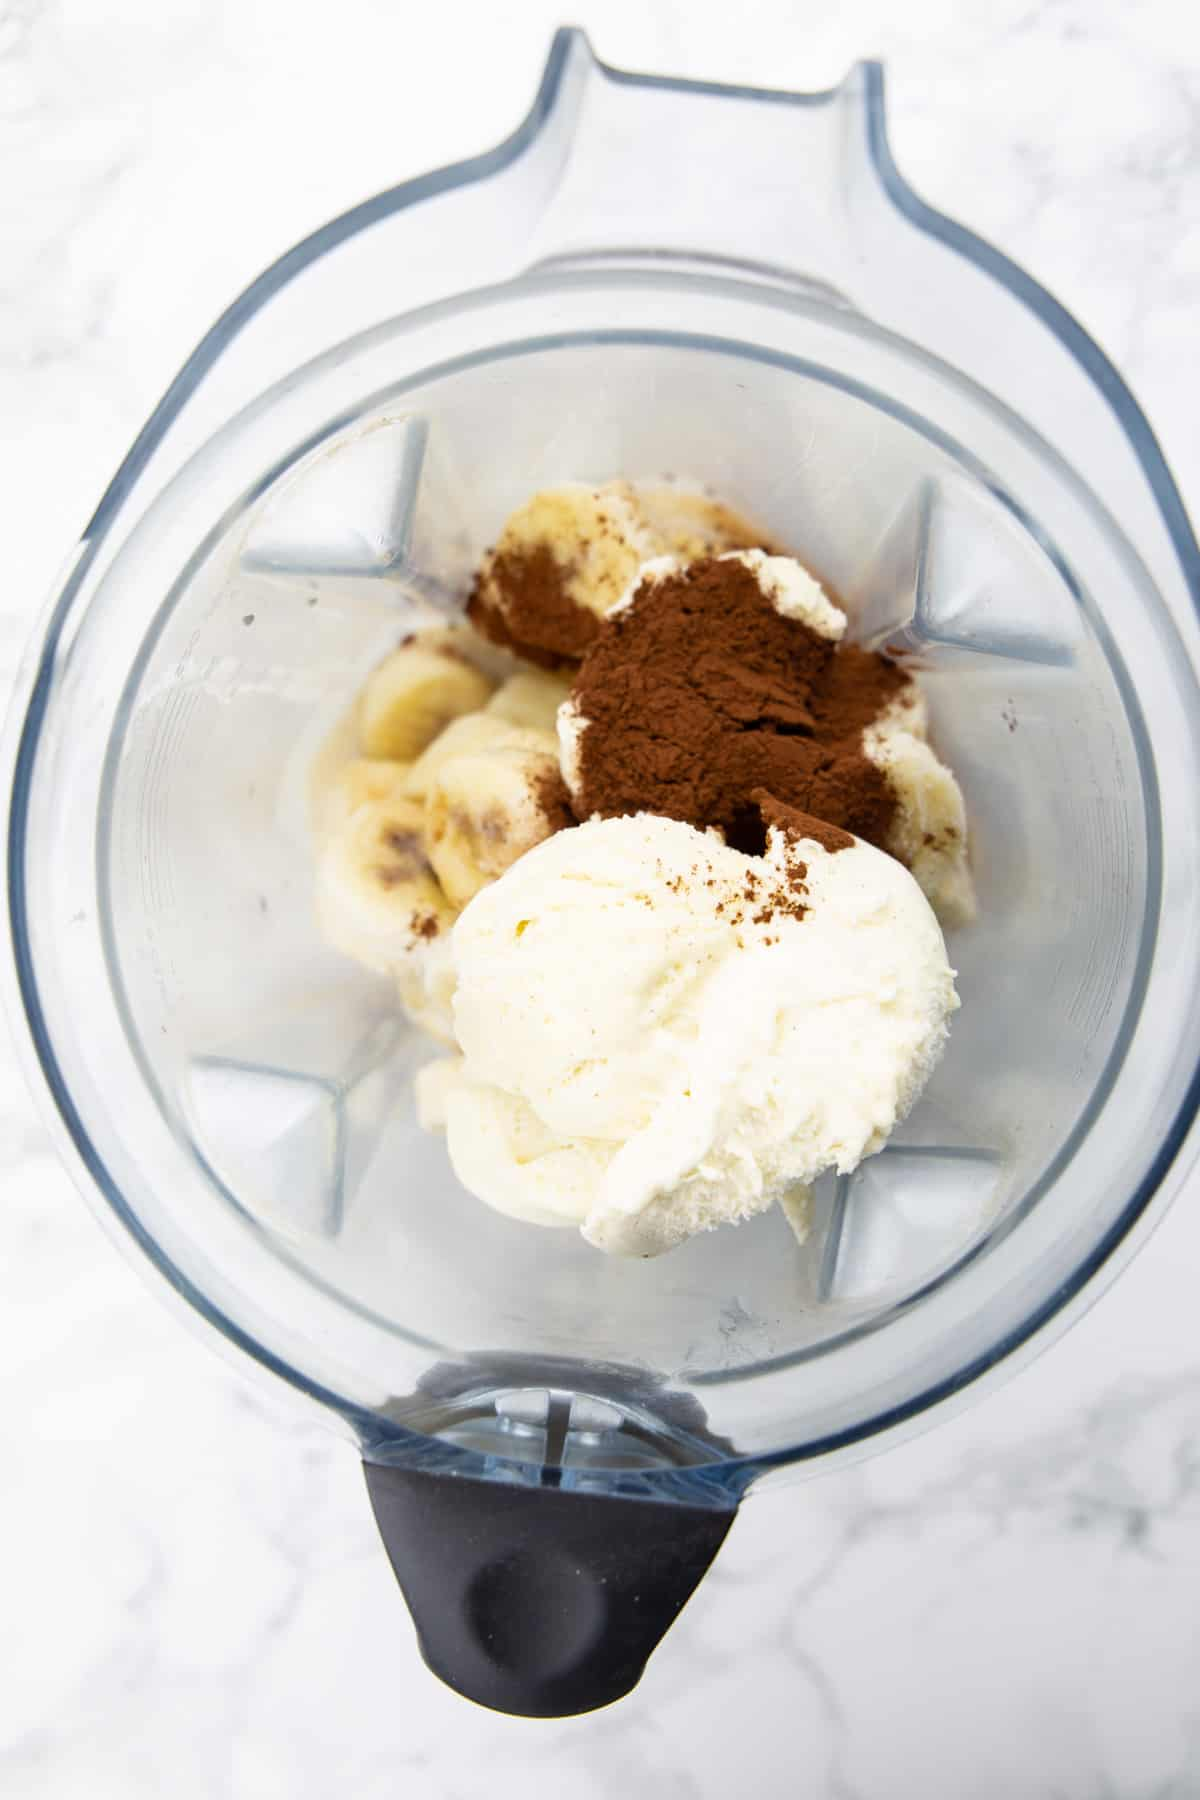 frozen bananas, cocoa powder, and ice cream in a blender